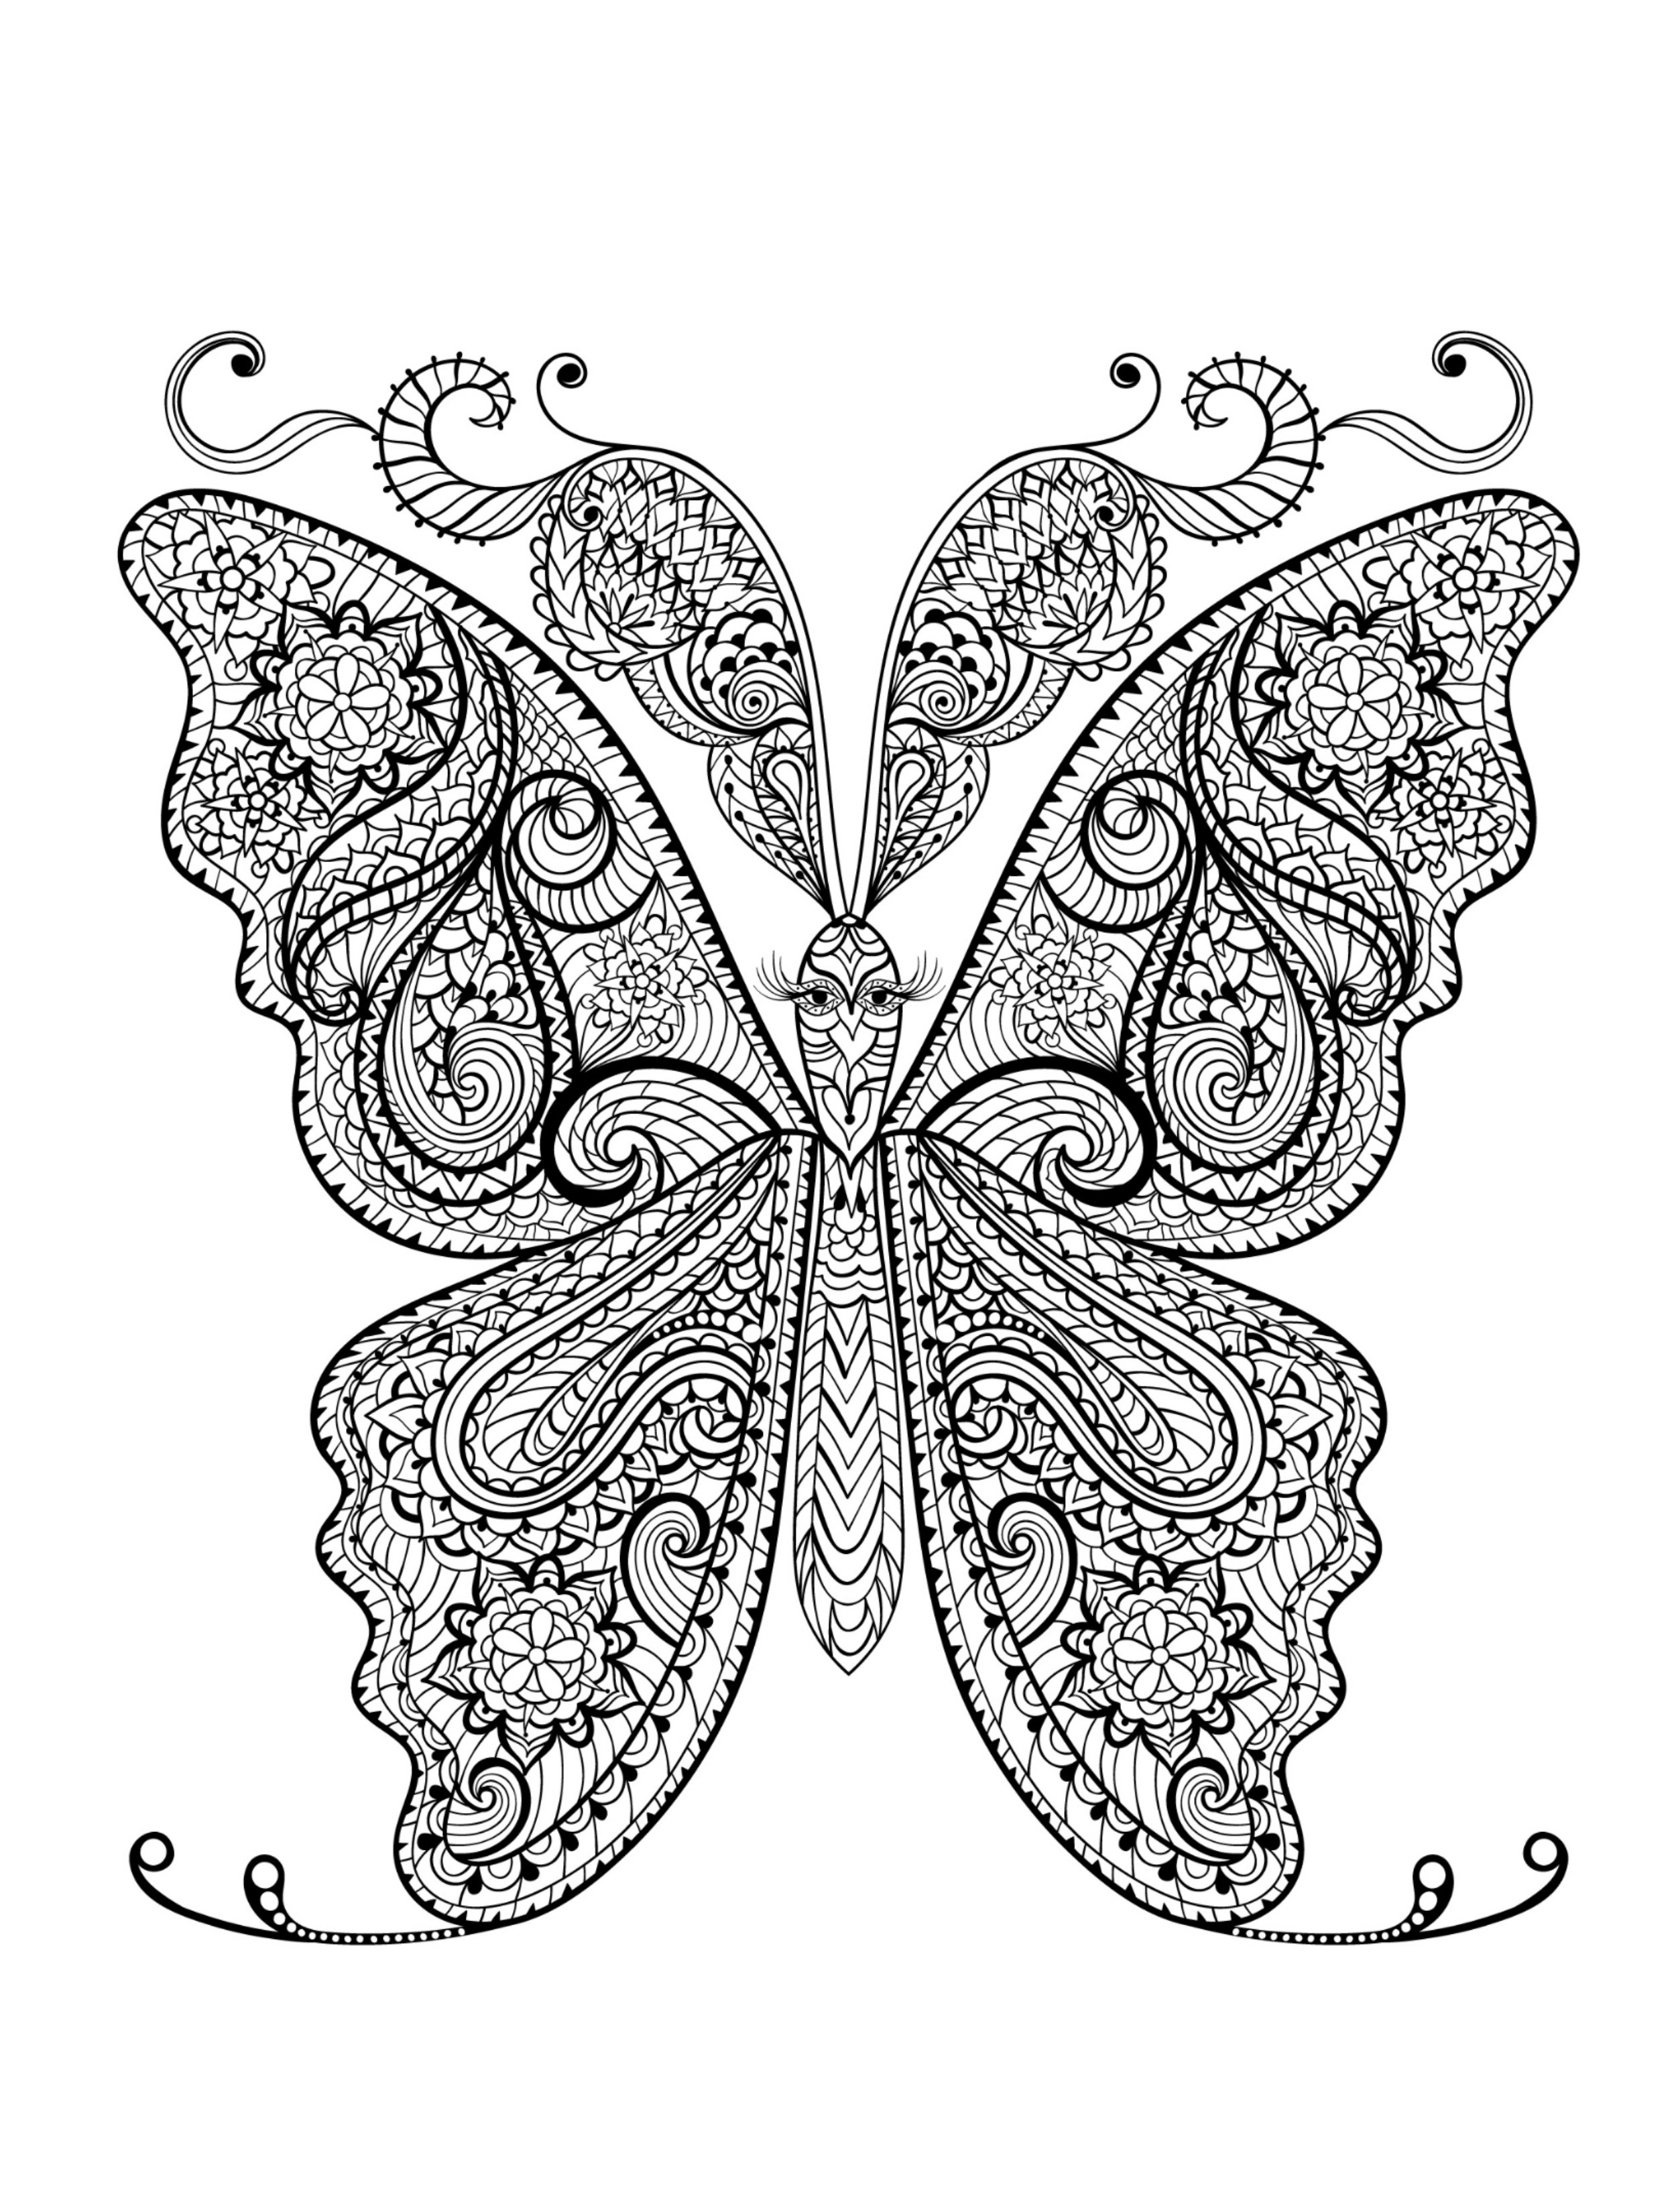 Coloring Book For Adults  Adult Coloring Pages Animals Best Coloring Pages For Kids